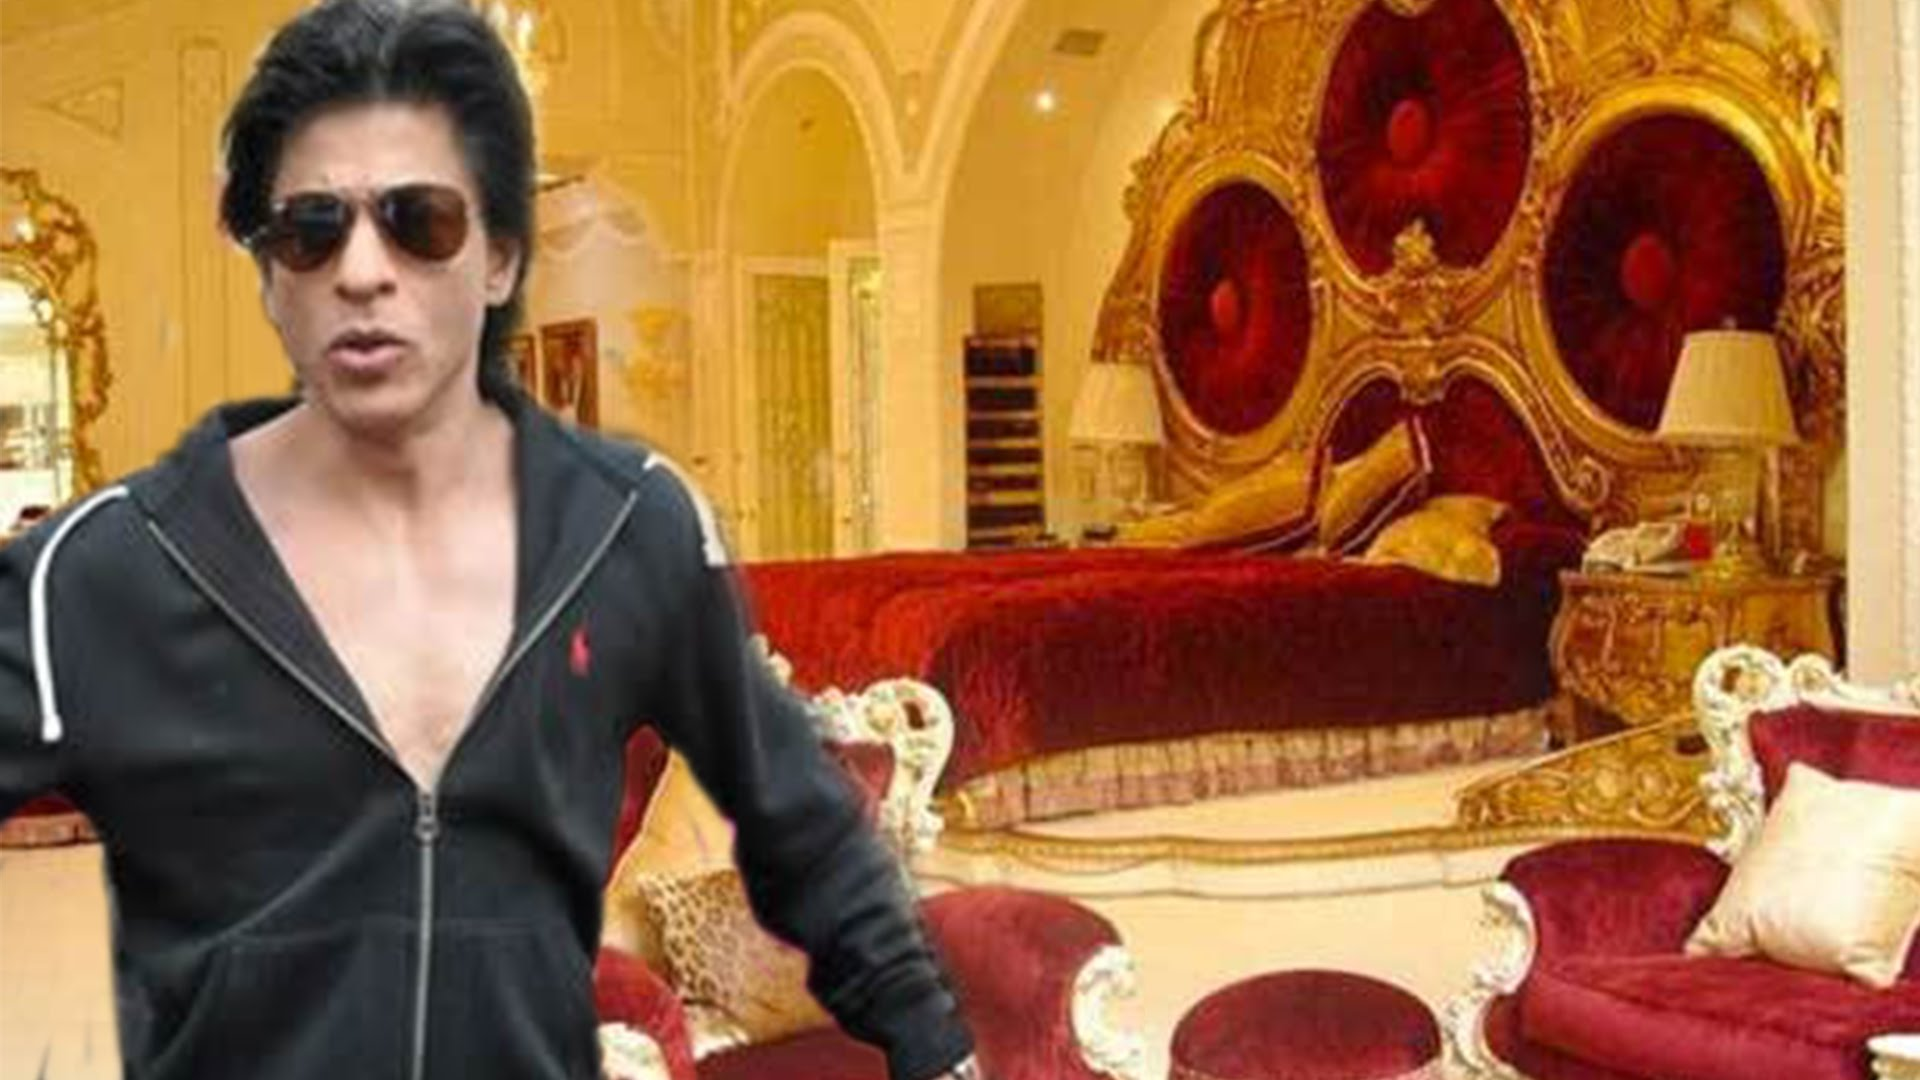 2 Bedroom Duplex Floor Plans Check Out The Inside Pictures Of Shahrukh Khan S Luxurious